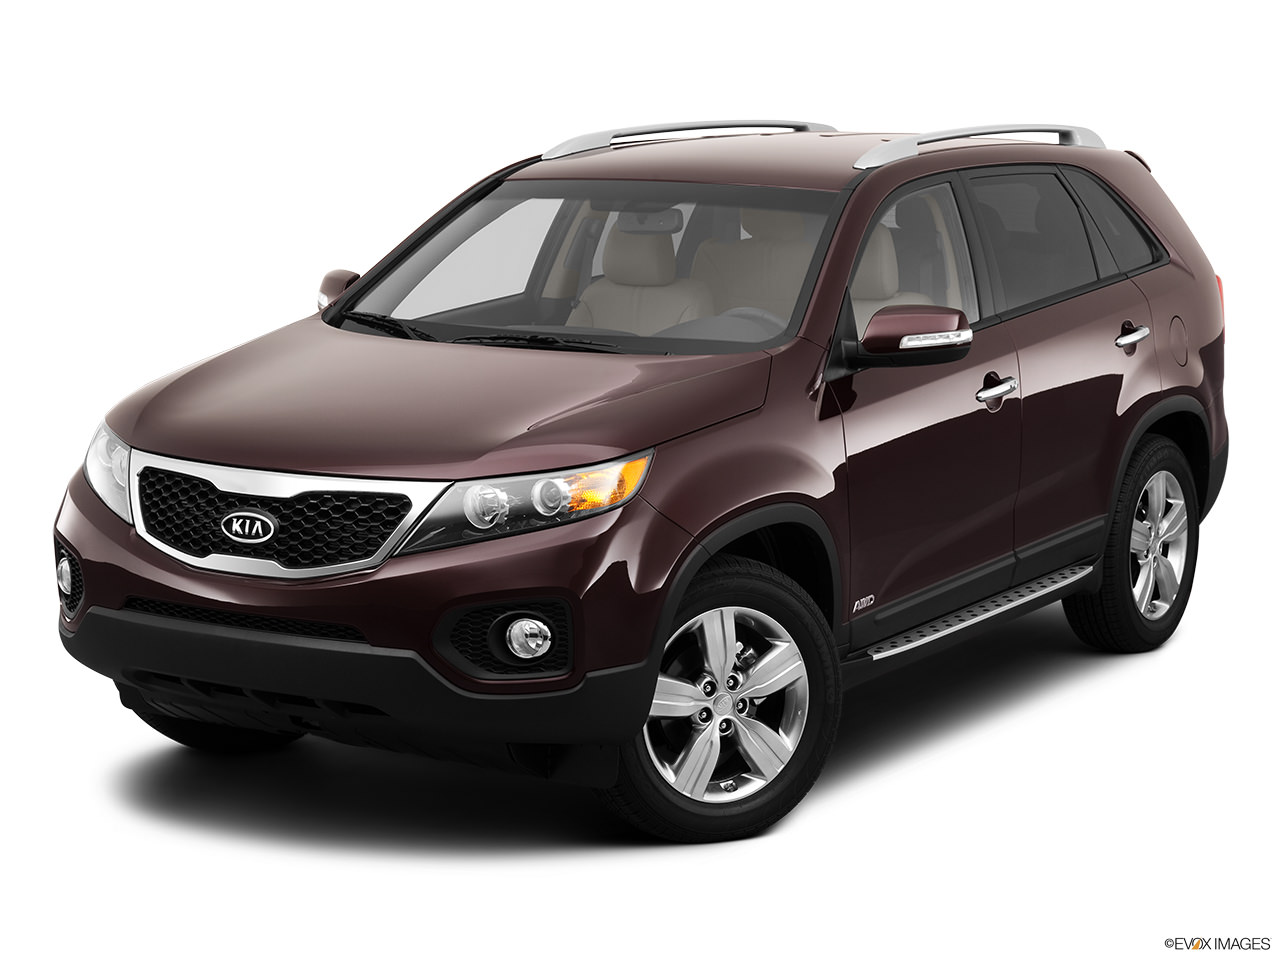 photo prevnext sorento side view trend kia truck cool trucks right front gallery